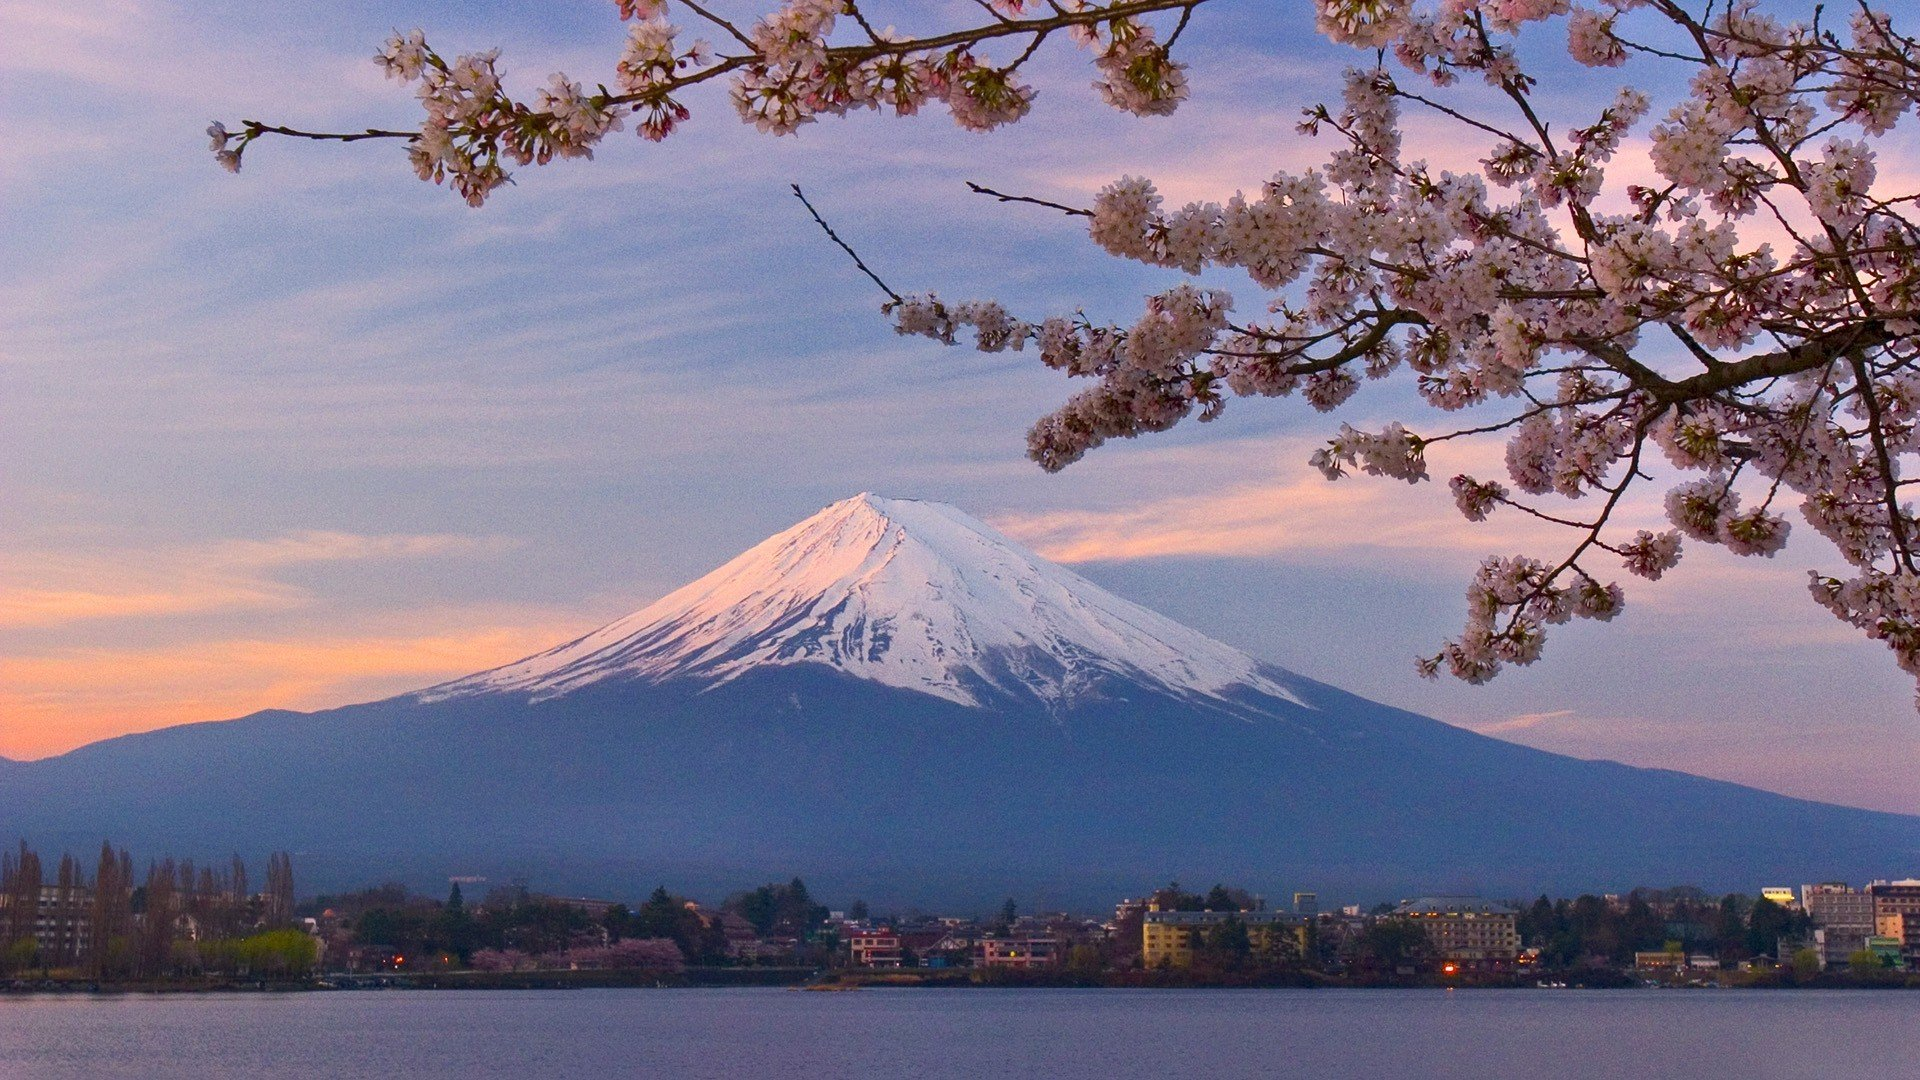 Mount Fuji wallpaper 14159 1920x1080